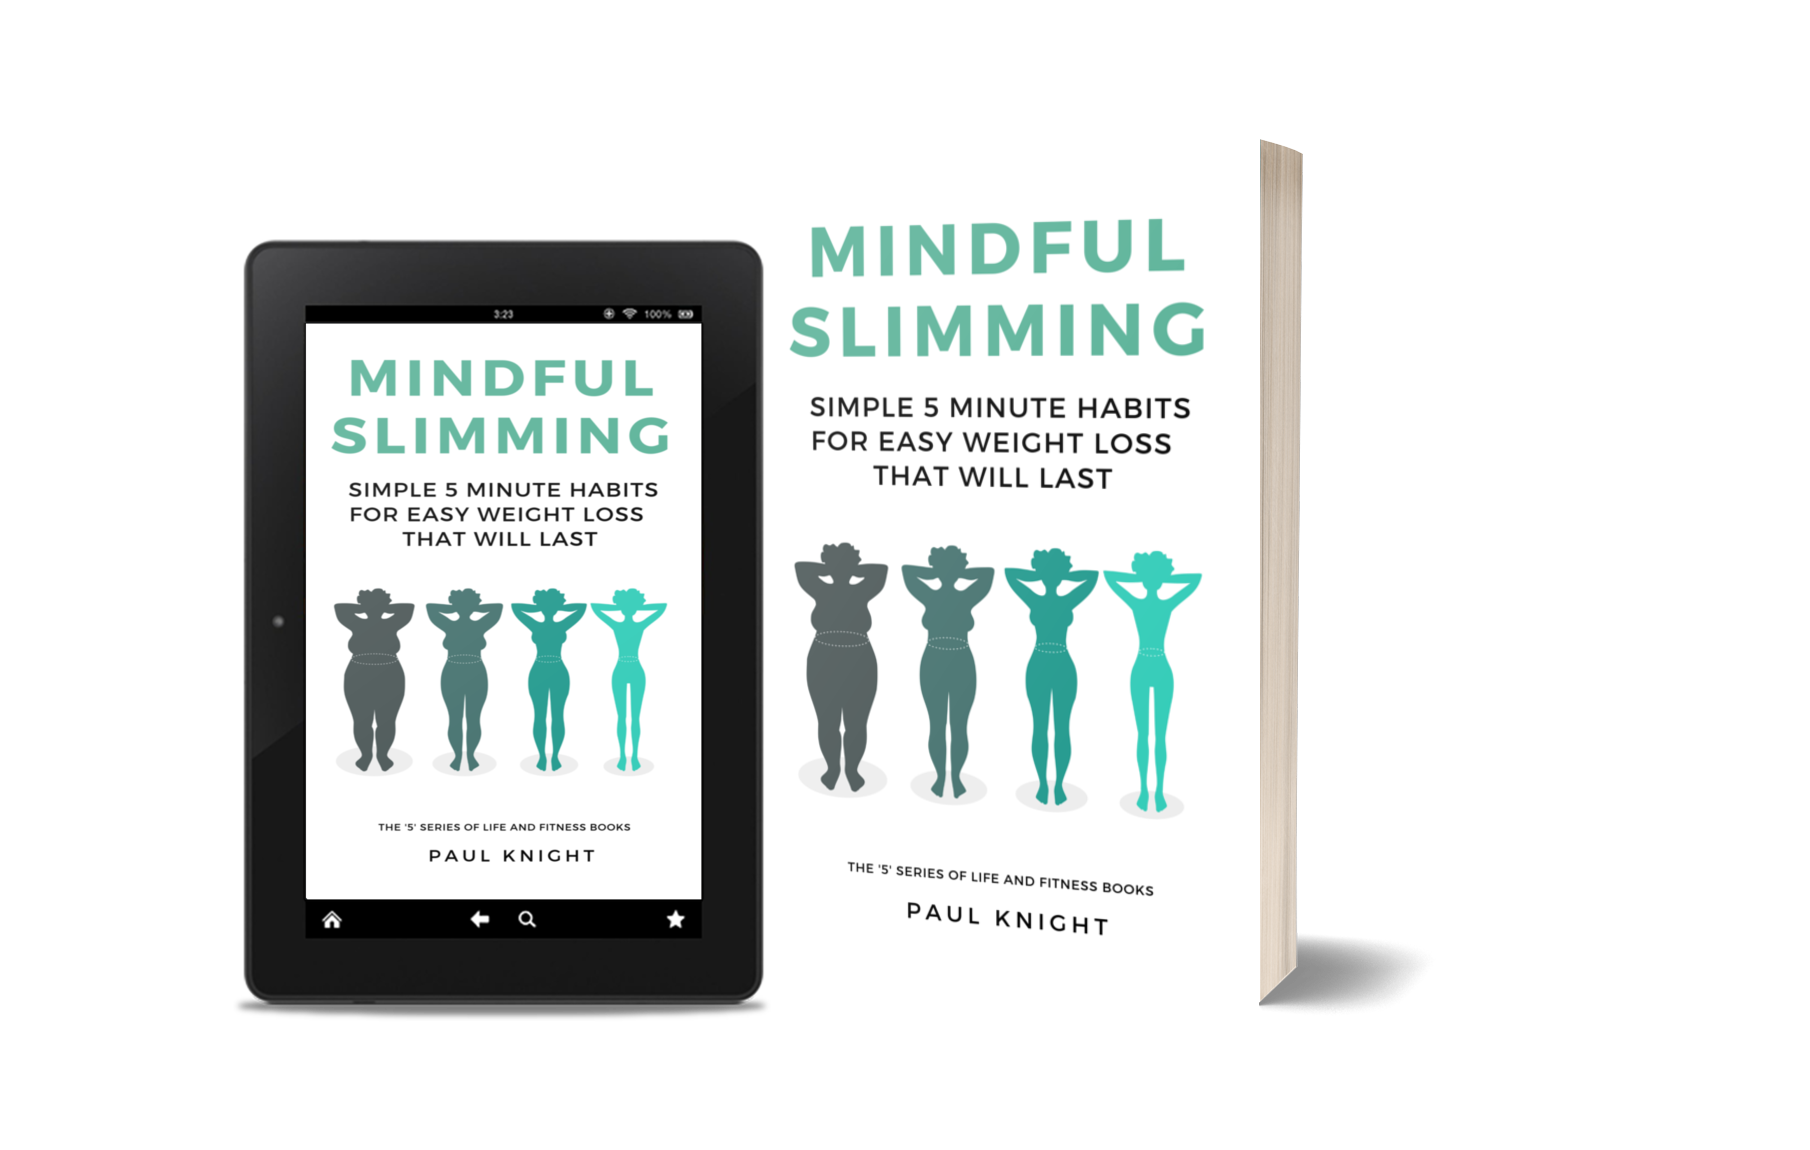 lifestyle fitness weight loss books mindful slimming